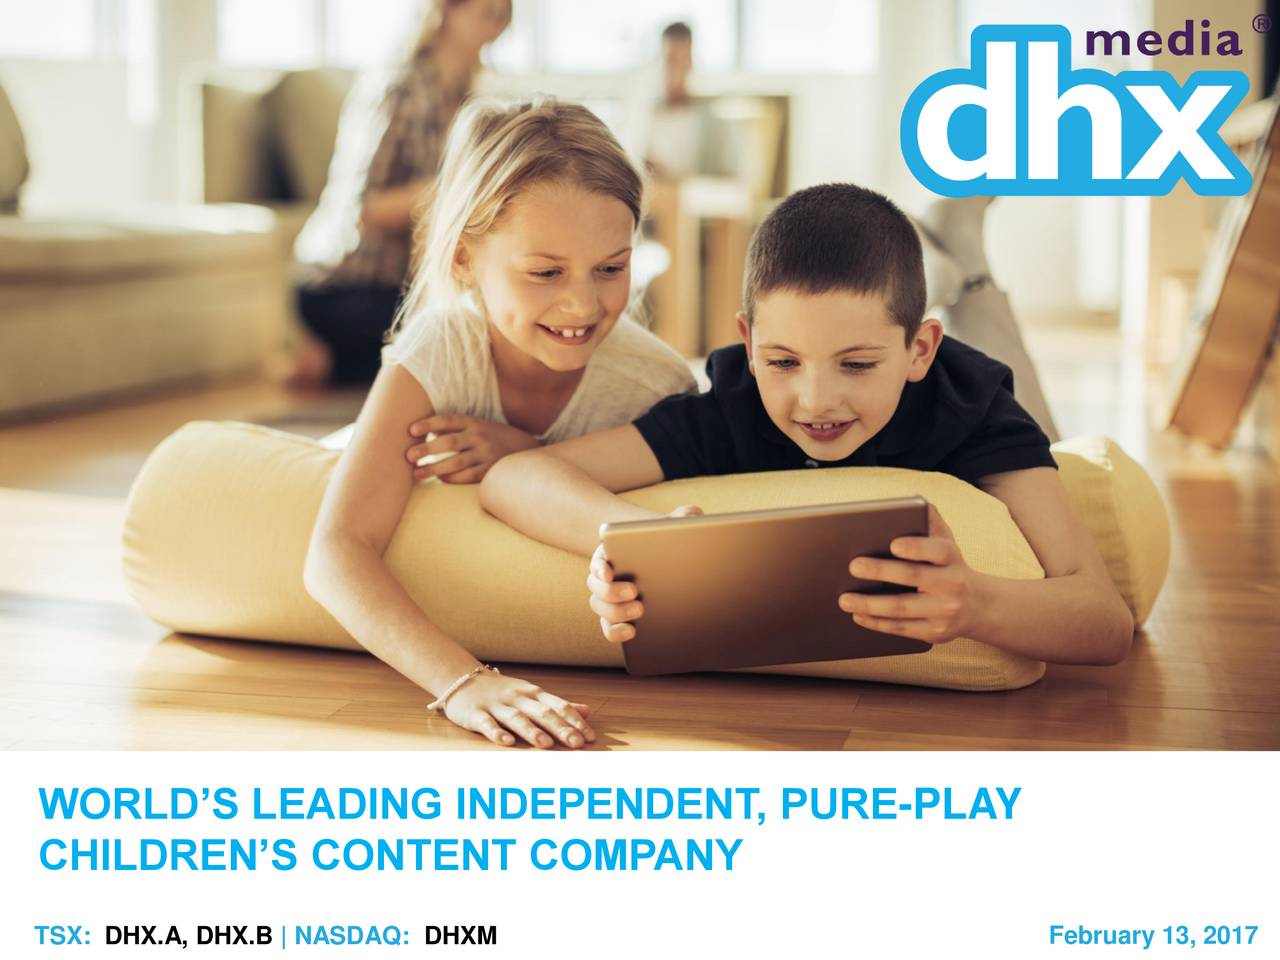 CHILDRENS CONTENT COMPANY February 13, 2017